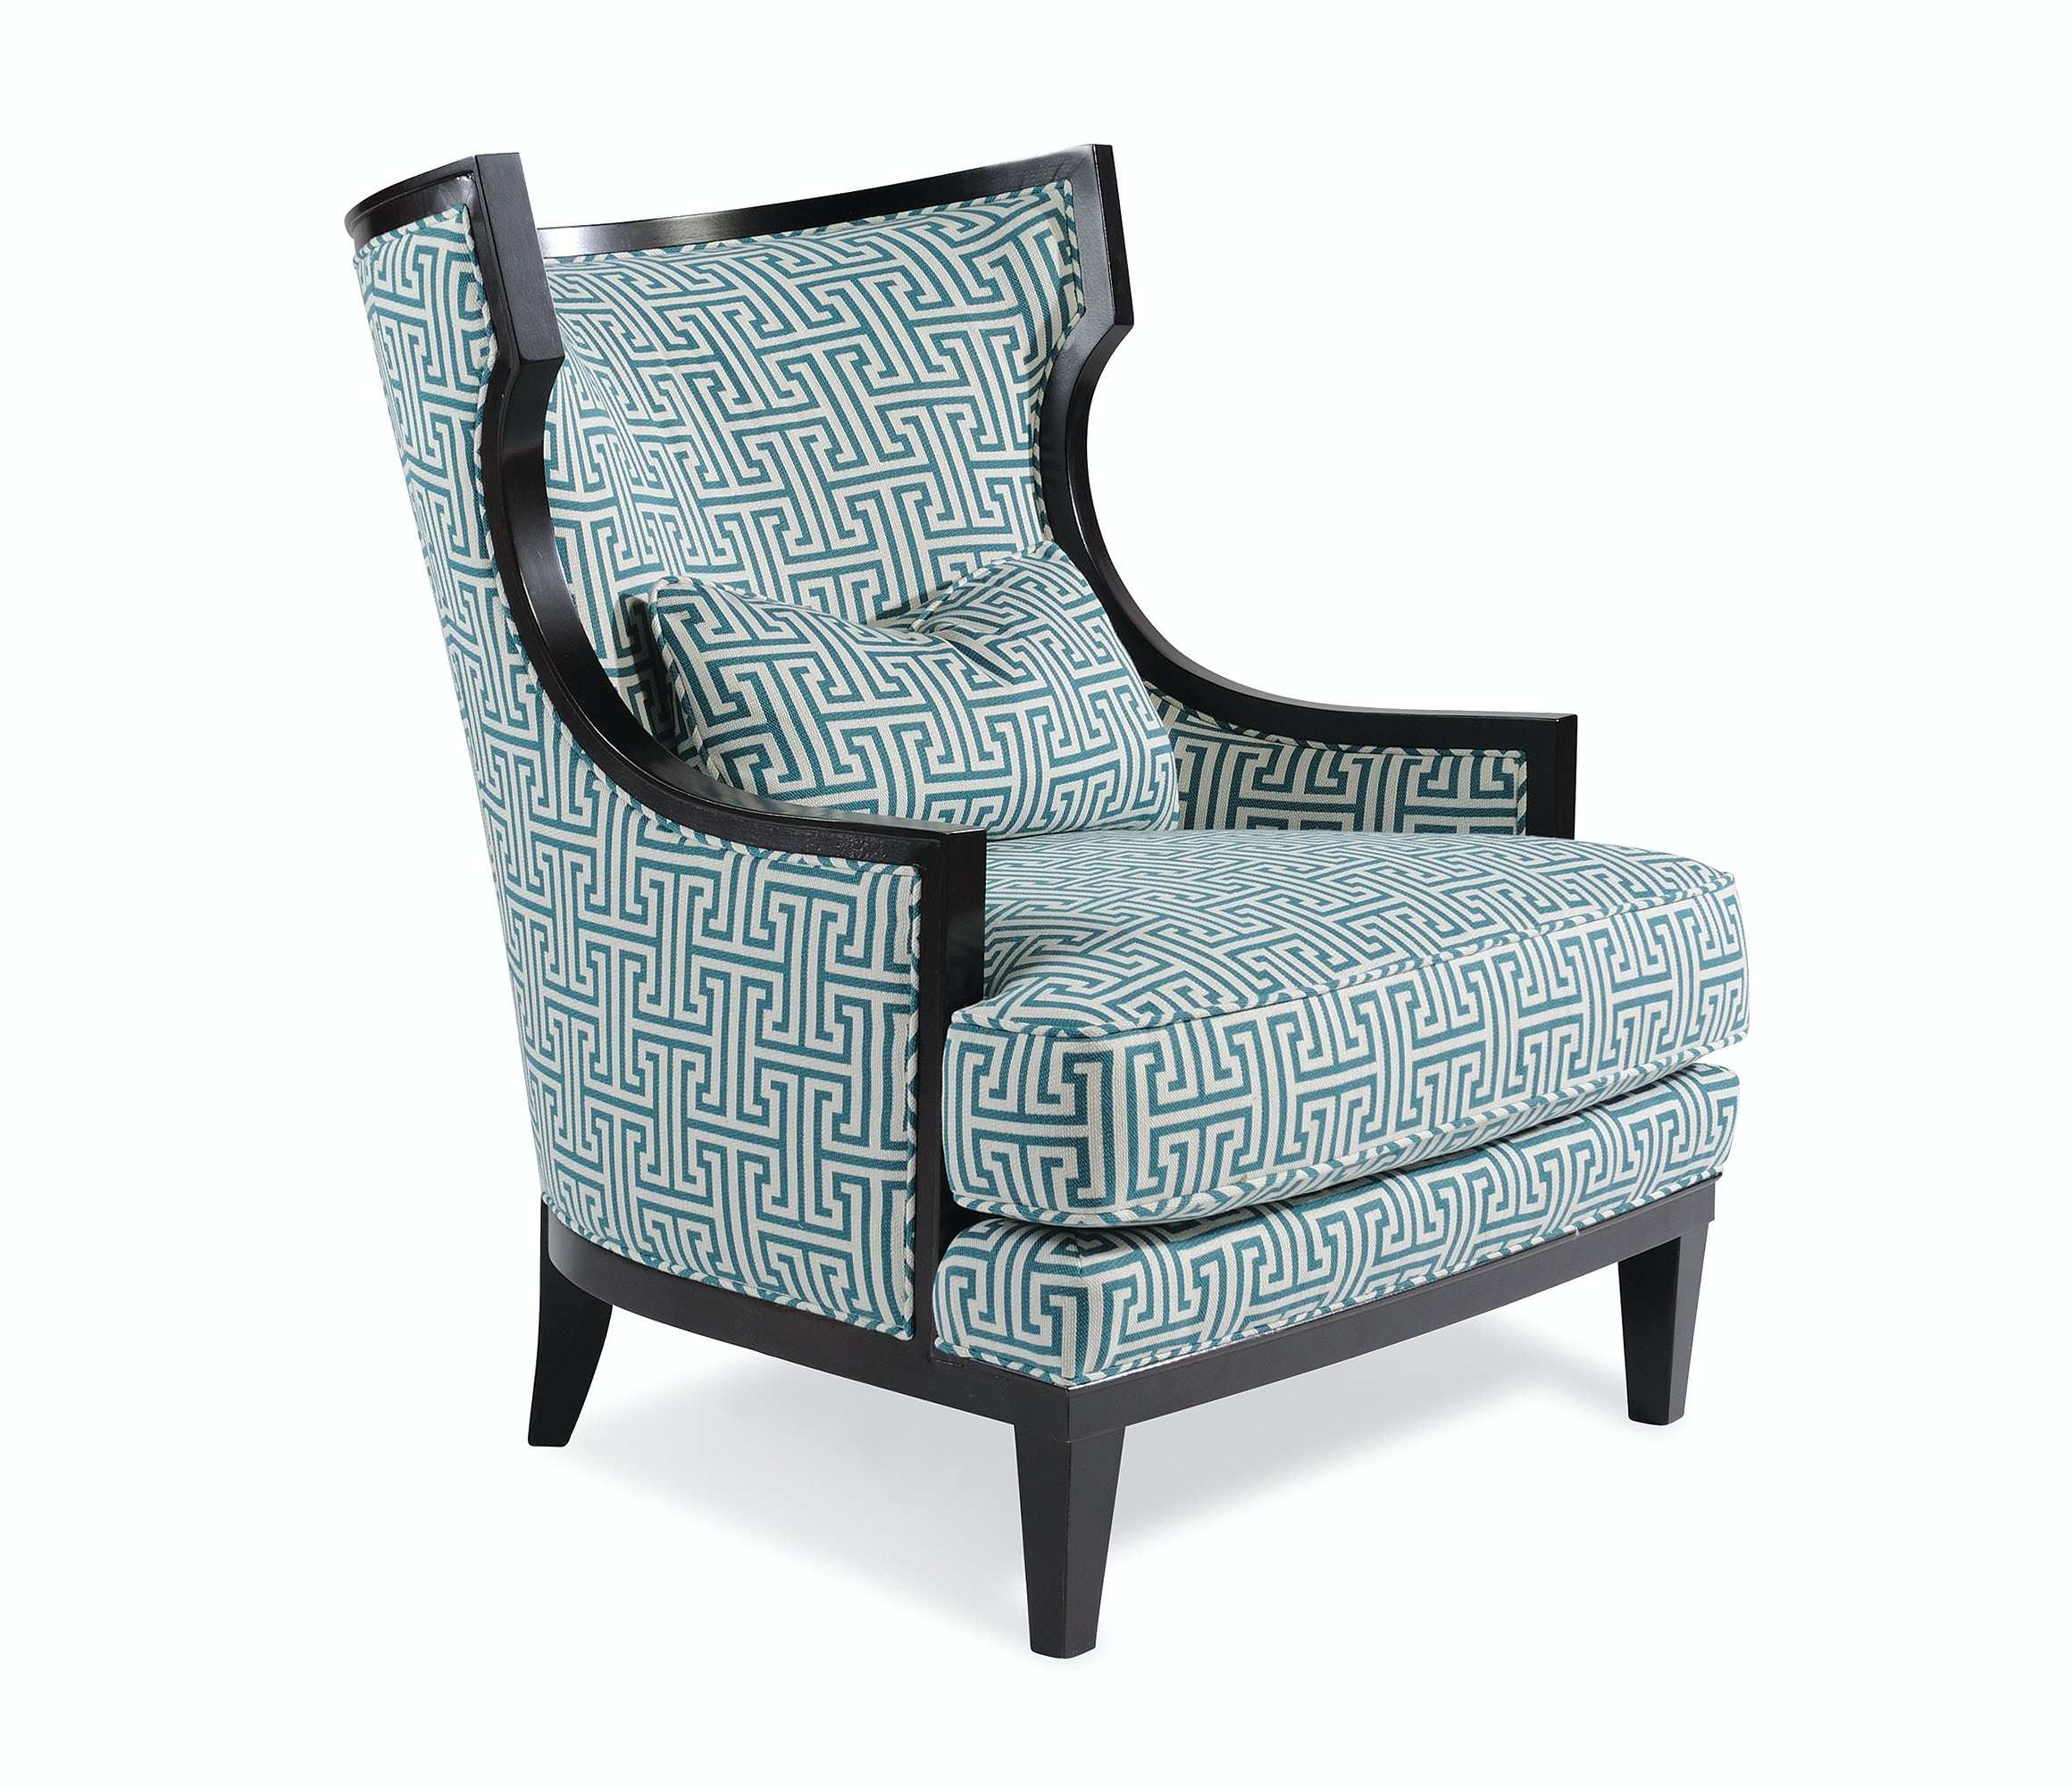 Taylor King Furniture Elle Chair 350 01